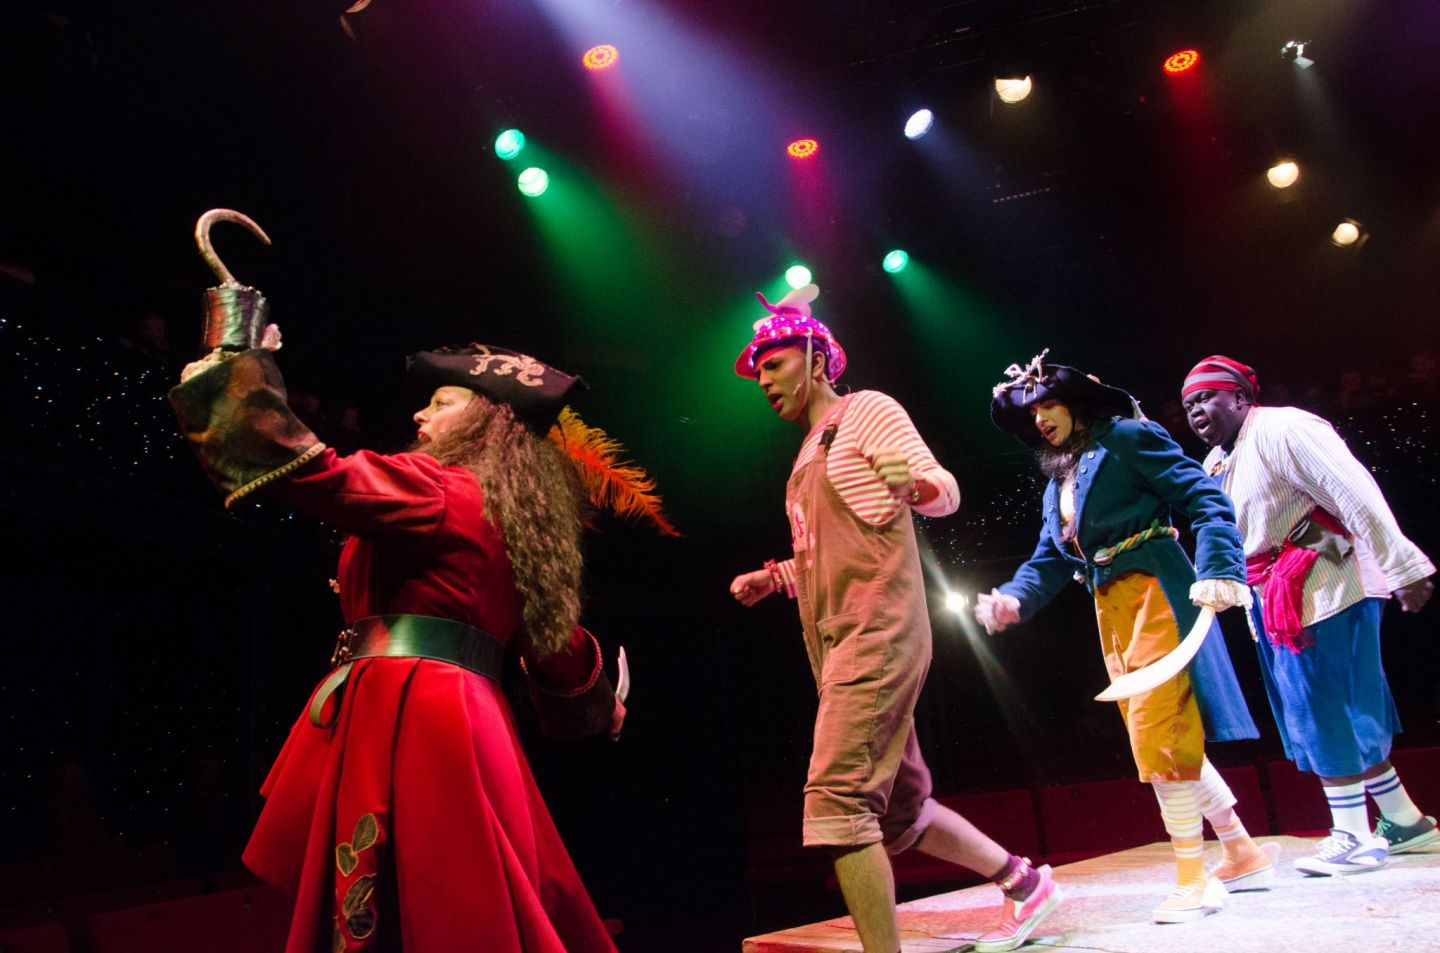 Peter Pan at The Dukes theatre, Lancaster